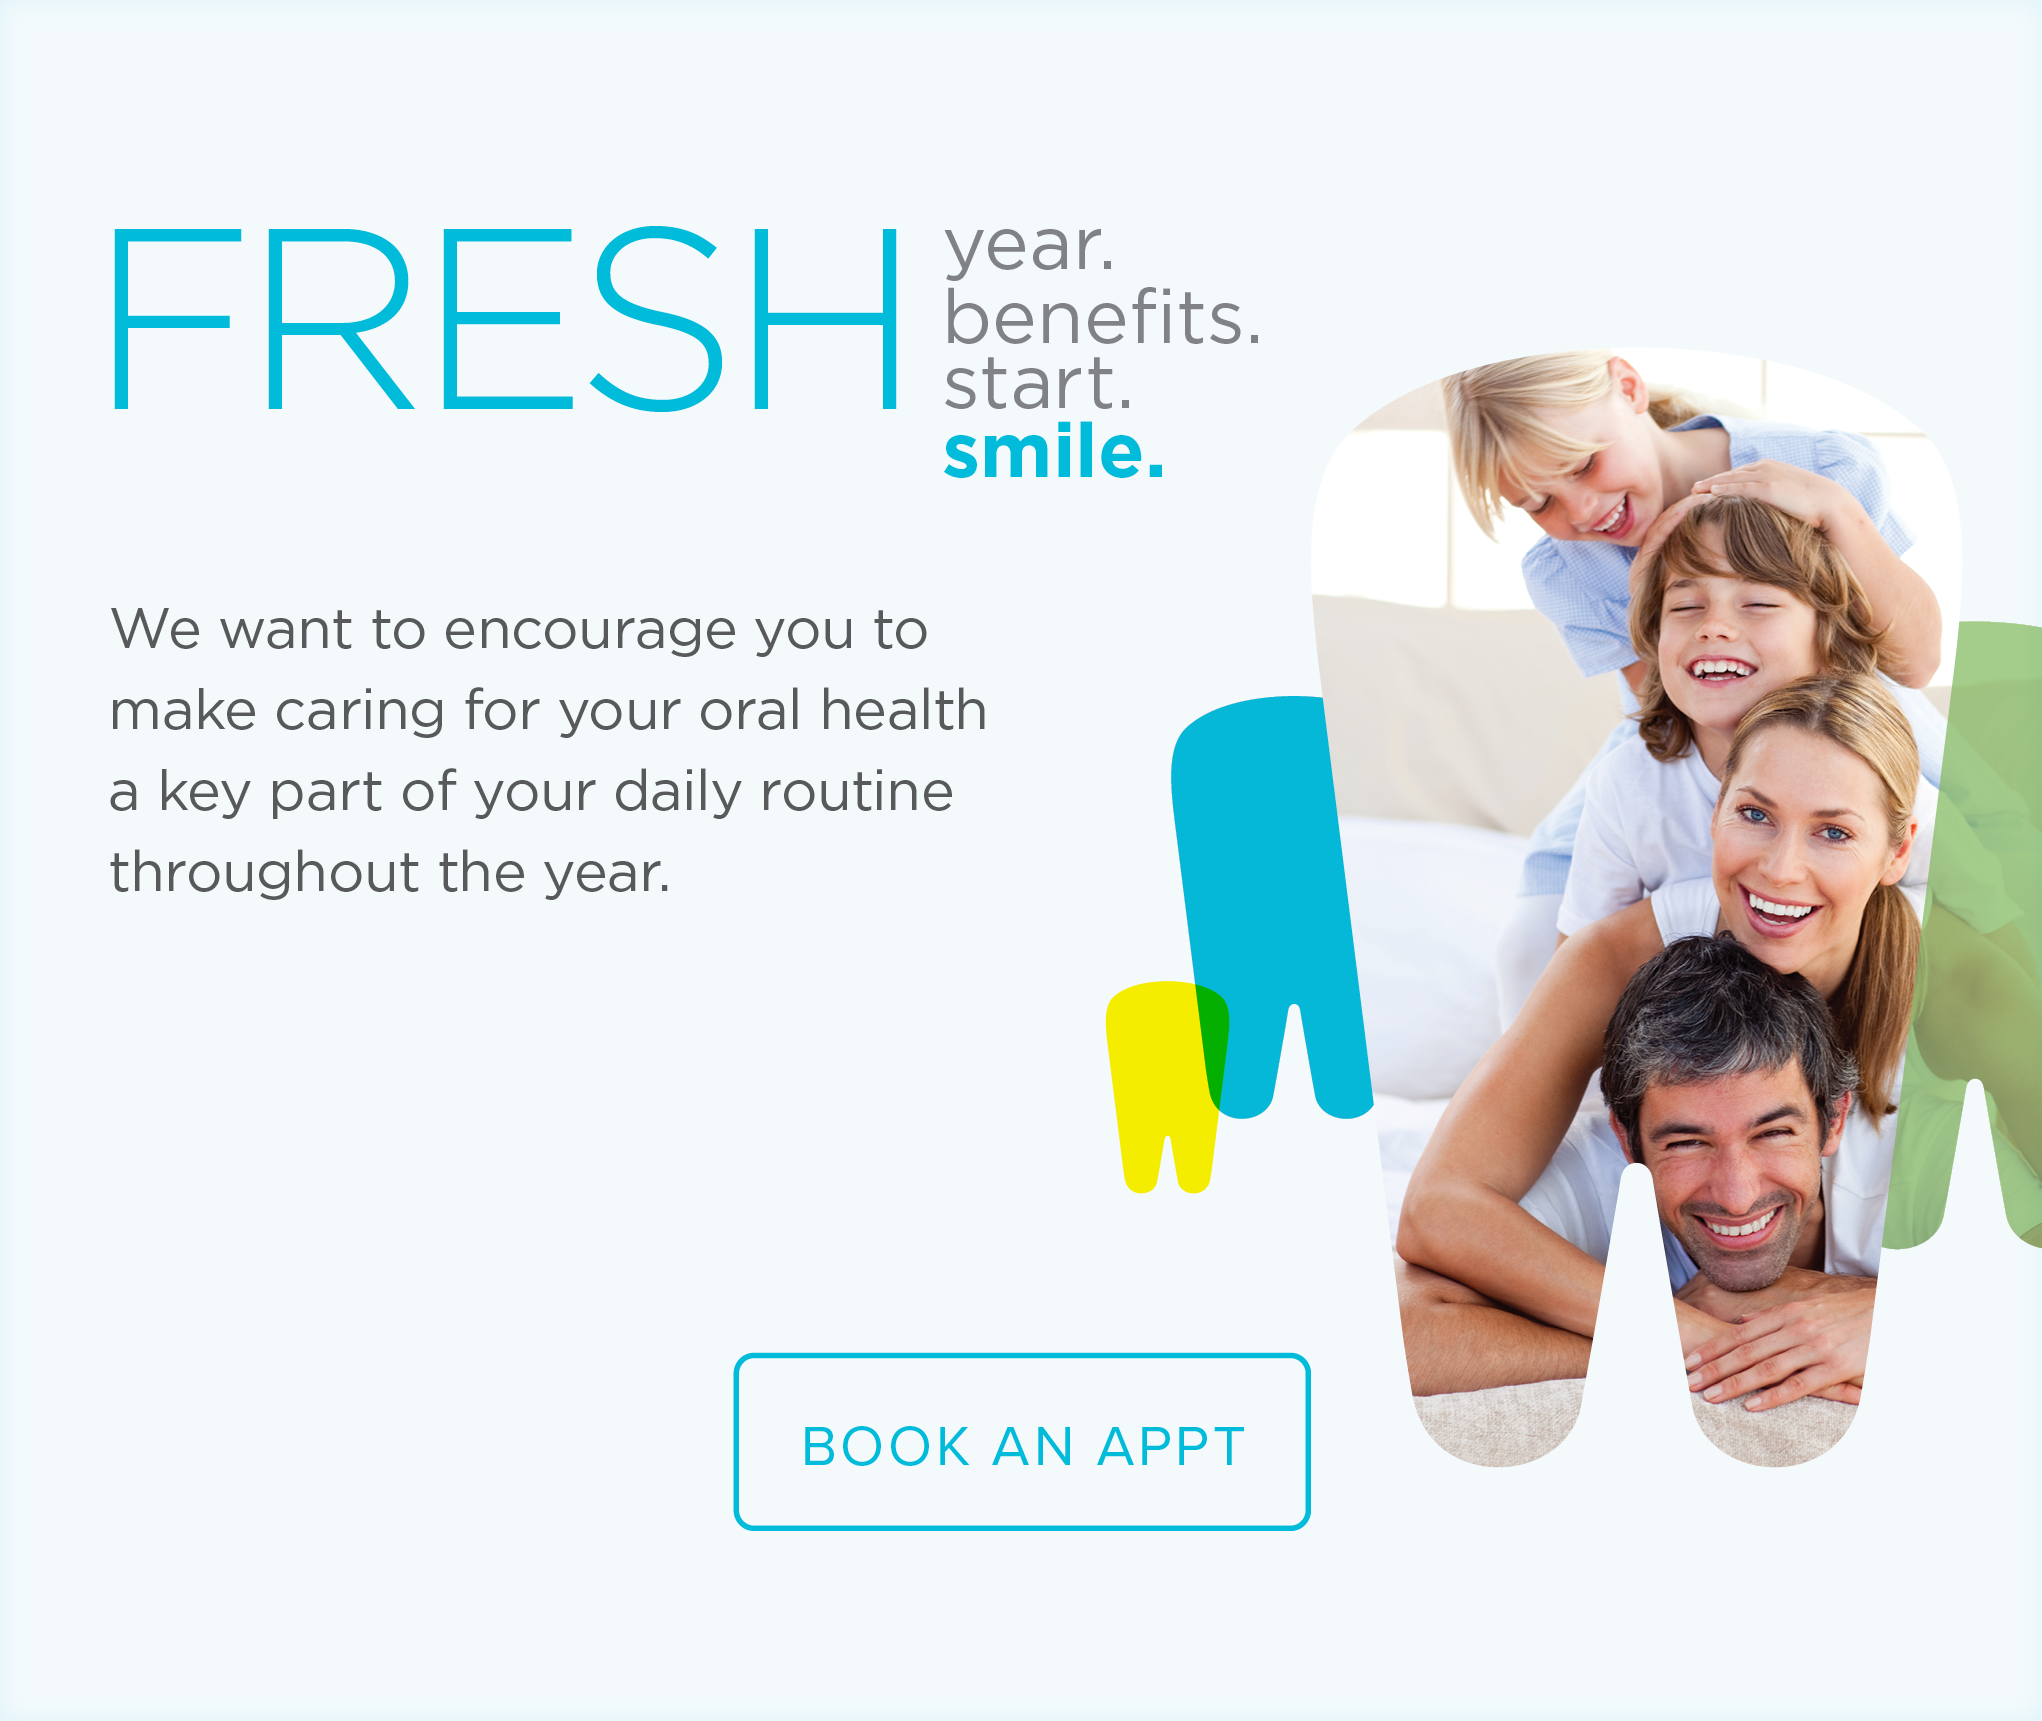 Fort Collins Modern Dentistry - Make the Most of Your Benefits